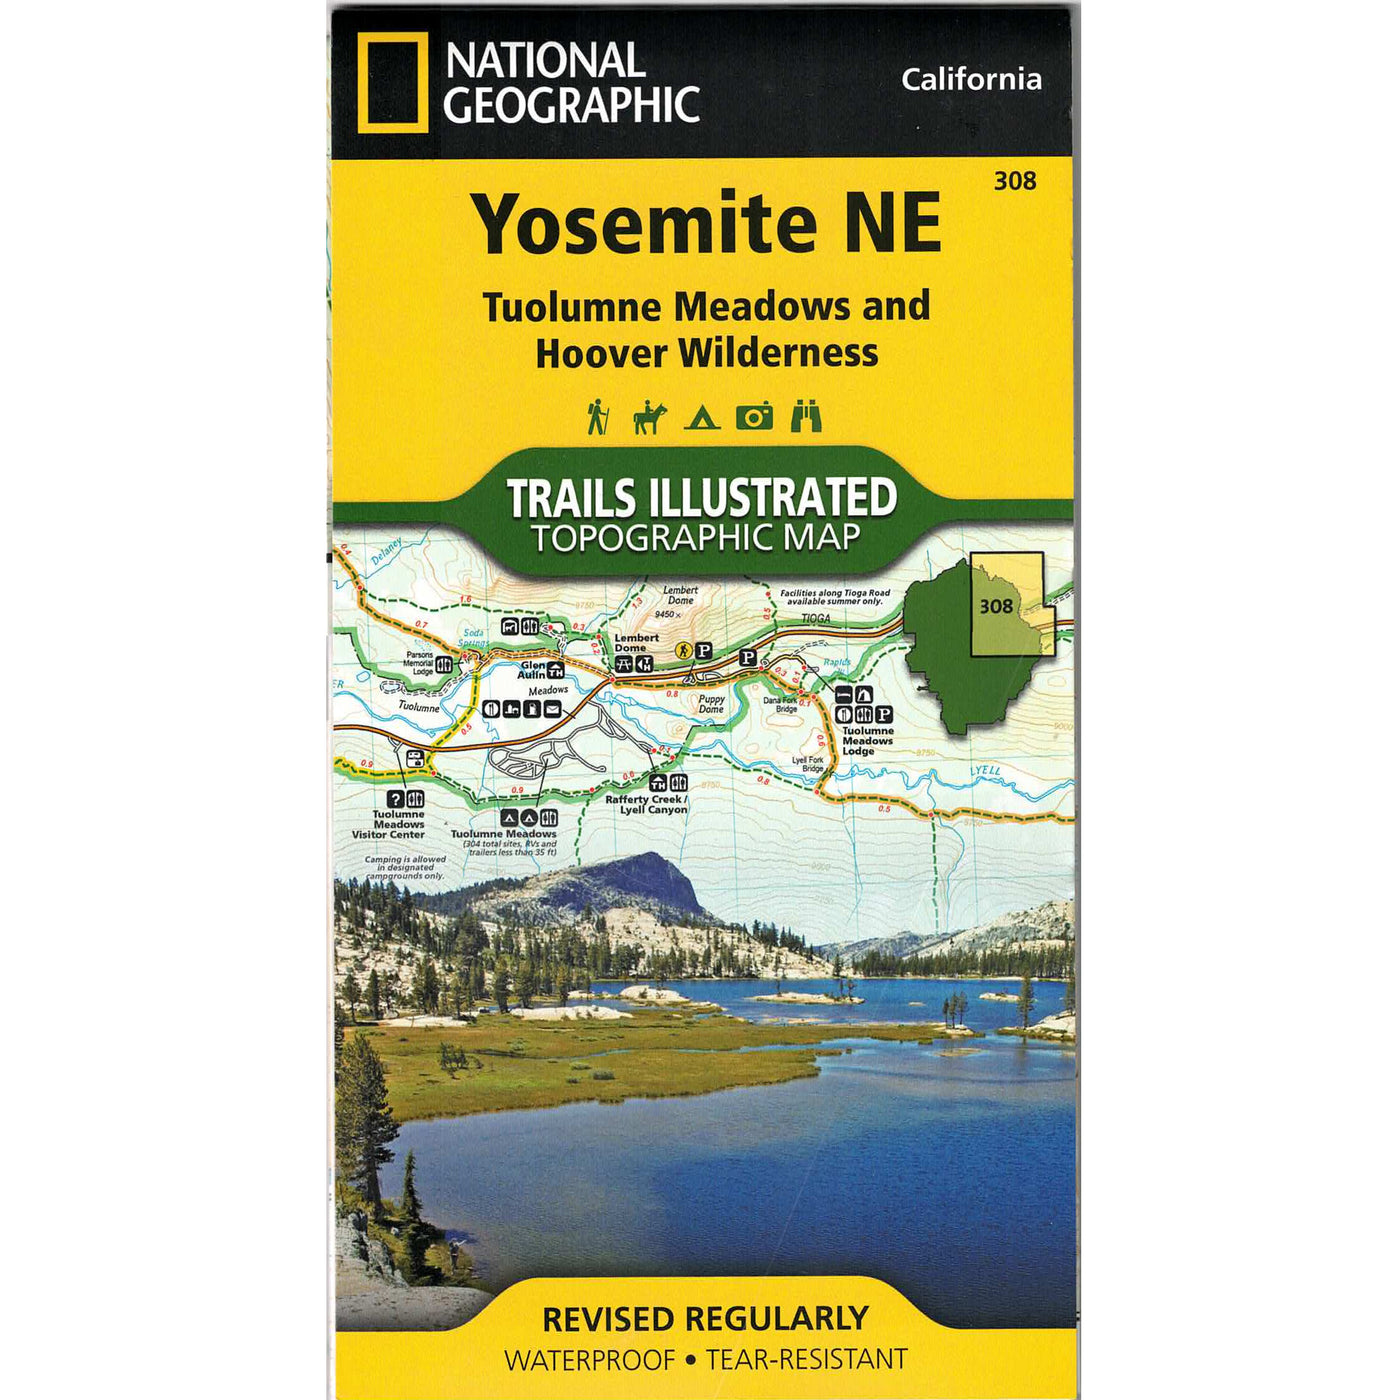 Yosemite NE Trails Illustrated: Tuolumne Meadows & Hoover Wilderness Topo Map